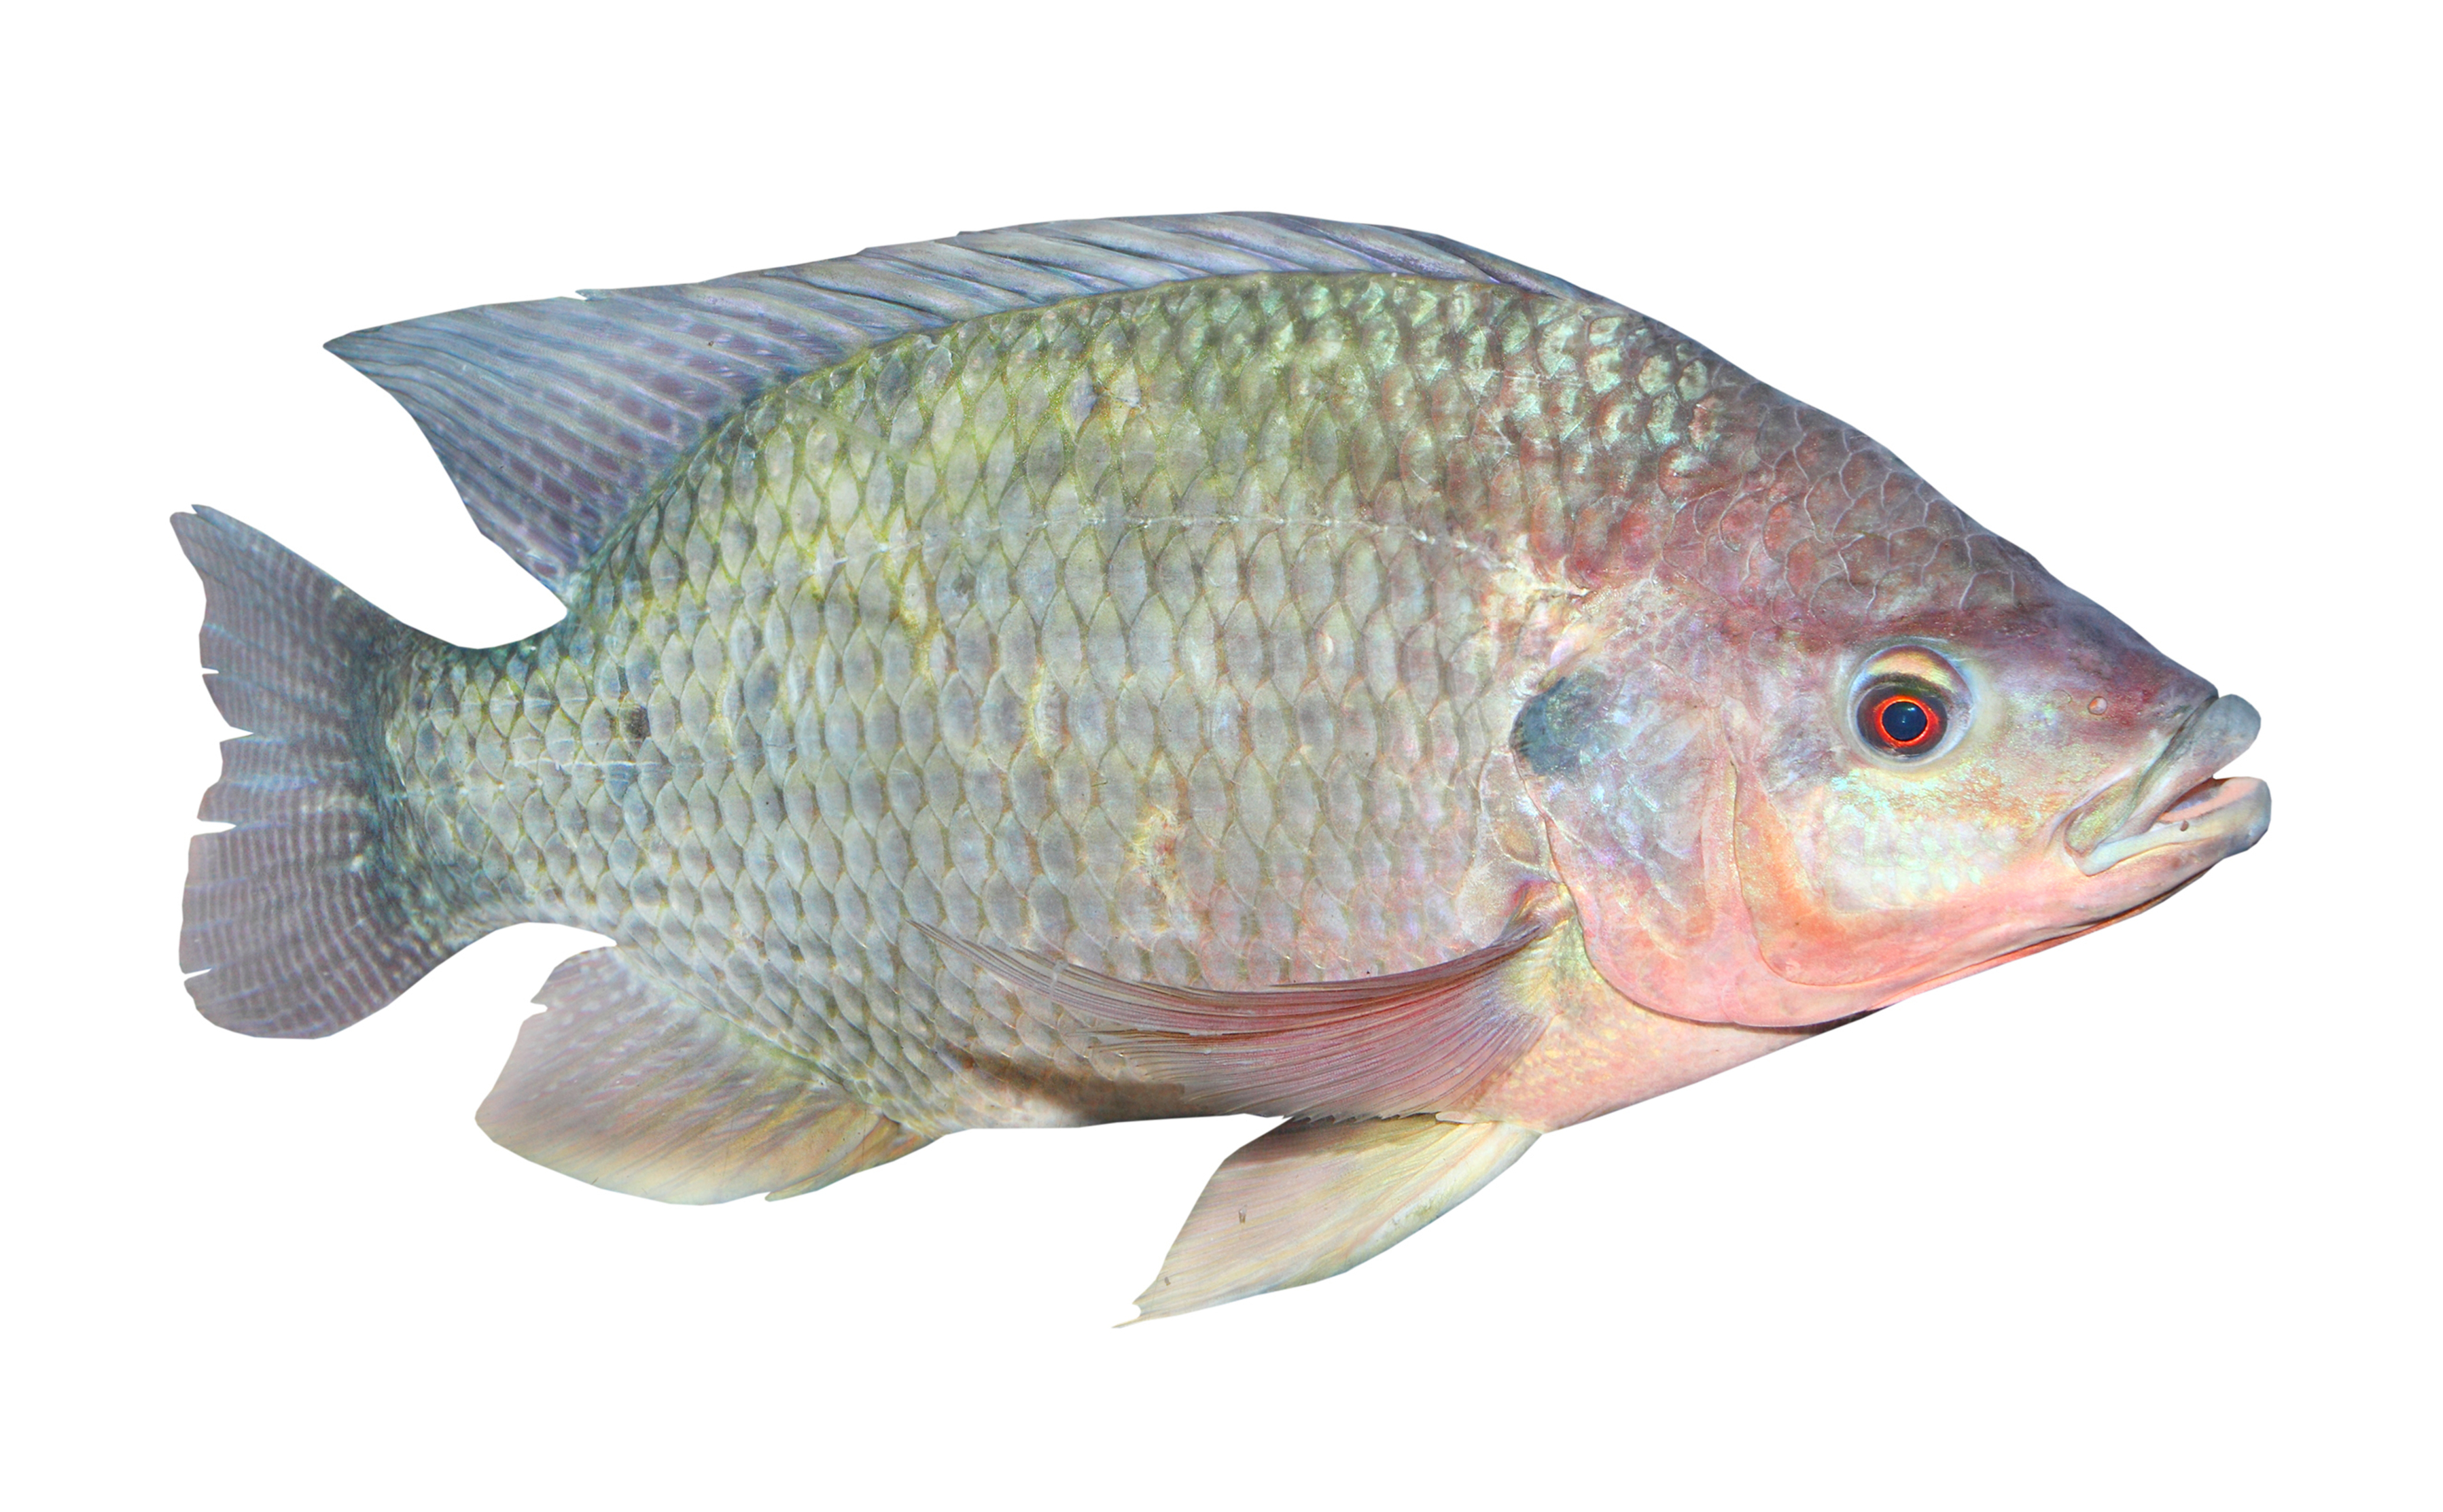 Americas tilapia alliance successor entity to the former for Tilapia not real fish